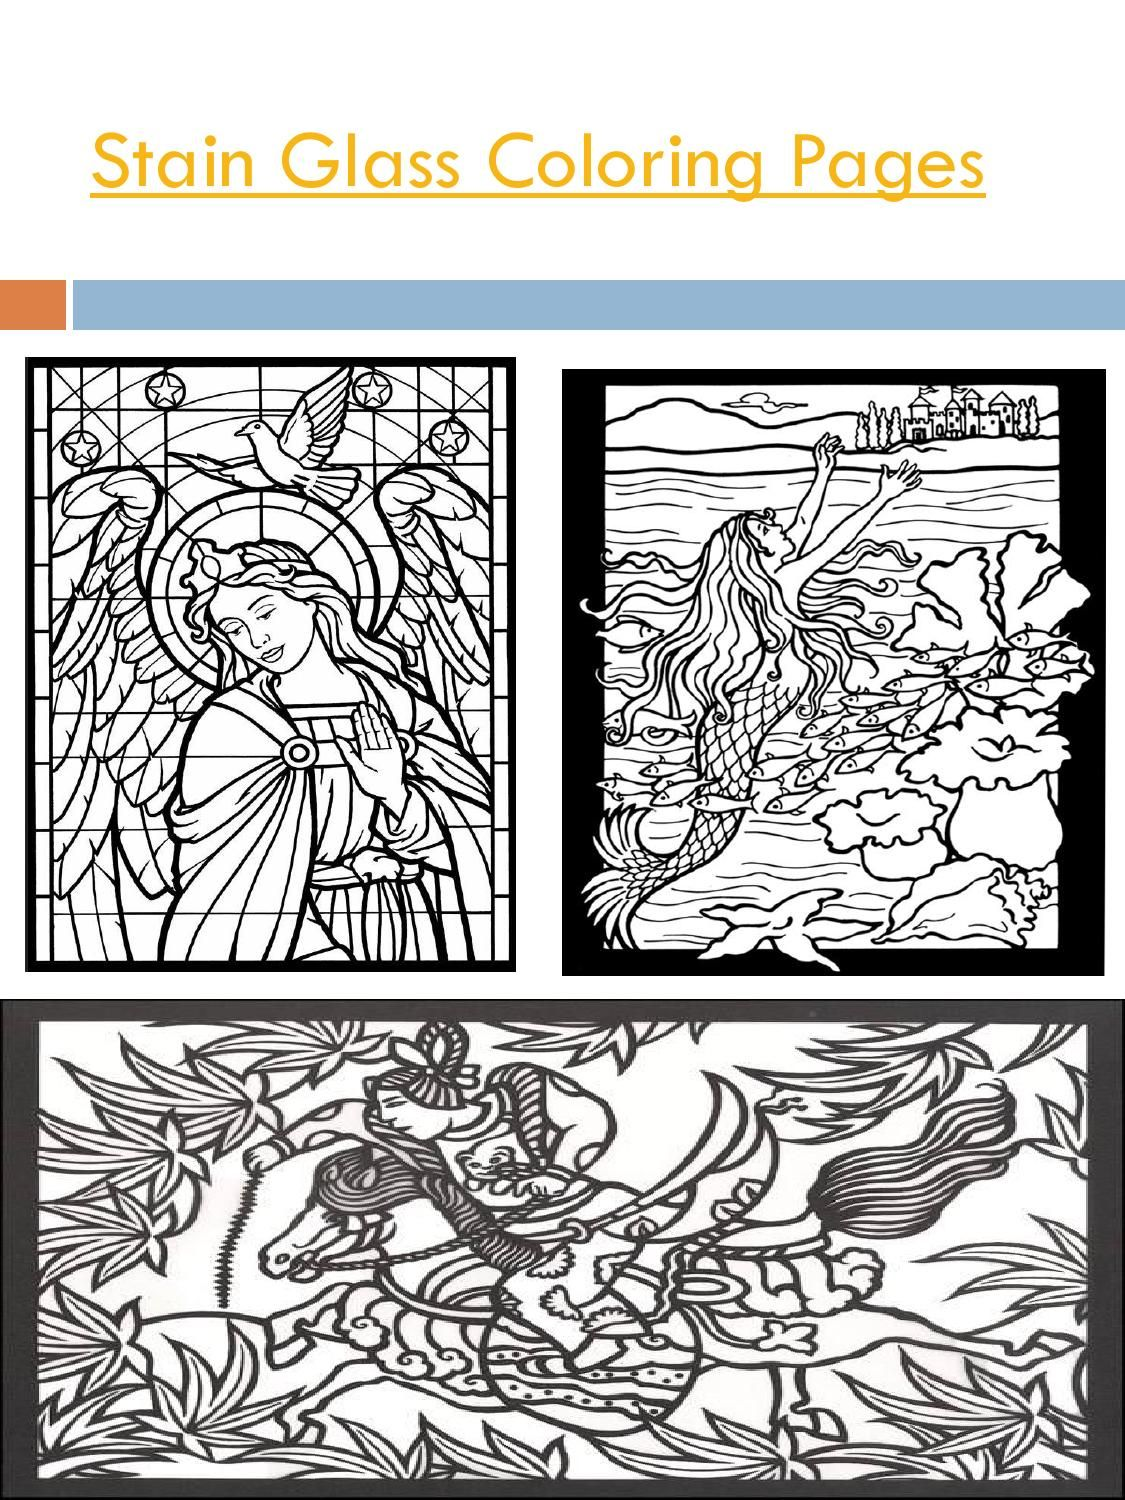 Stain Glass Coloring Pages Creativity Glass And Newspaper